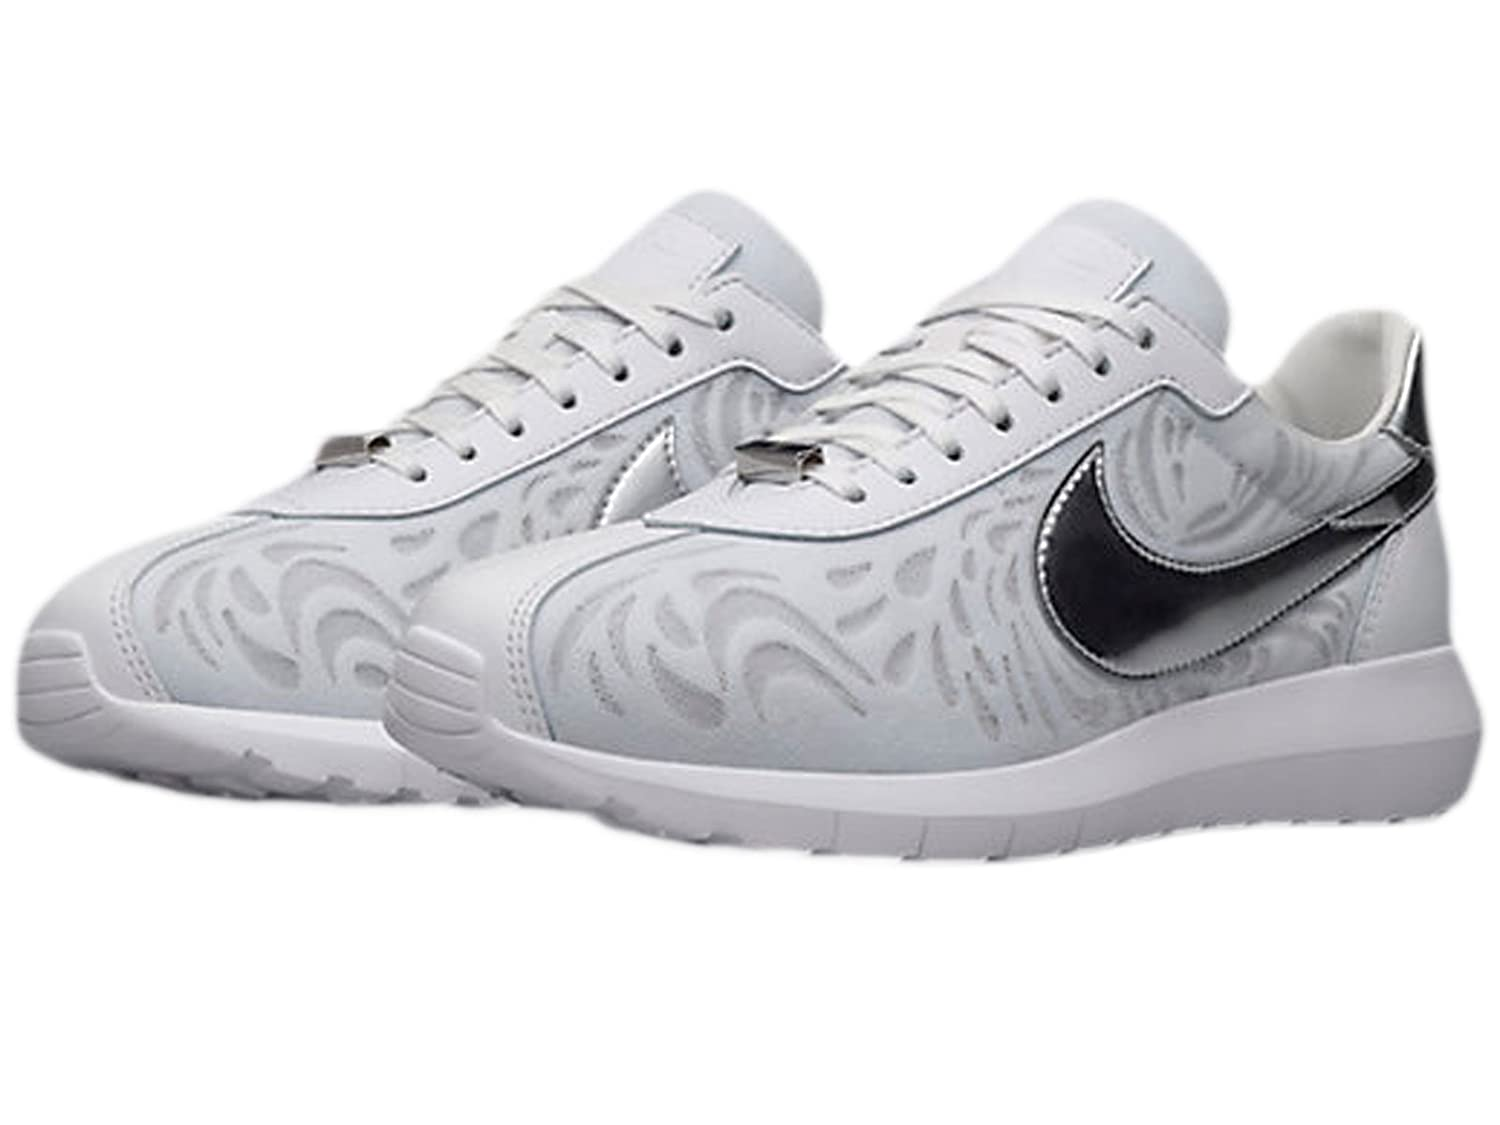 lower price with 9a1e2 1c59e 70%OFF Women s Nike Roshe LD-1000 QS Serena Williams Shoes White 810382-